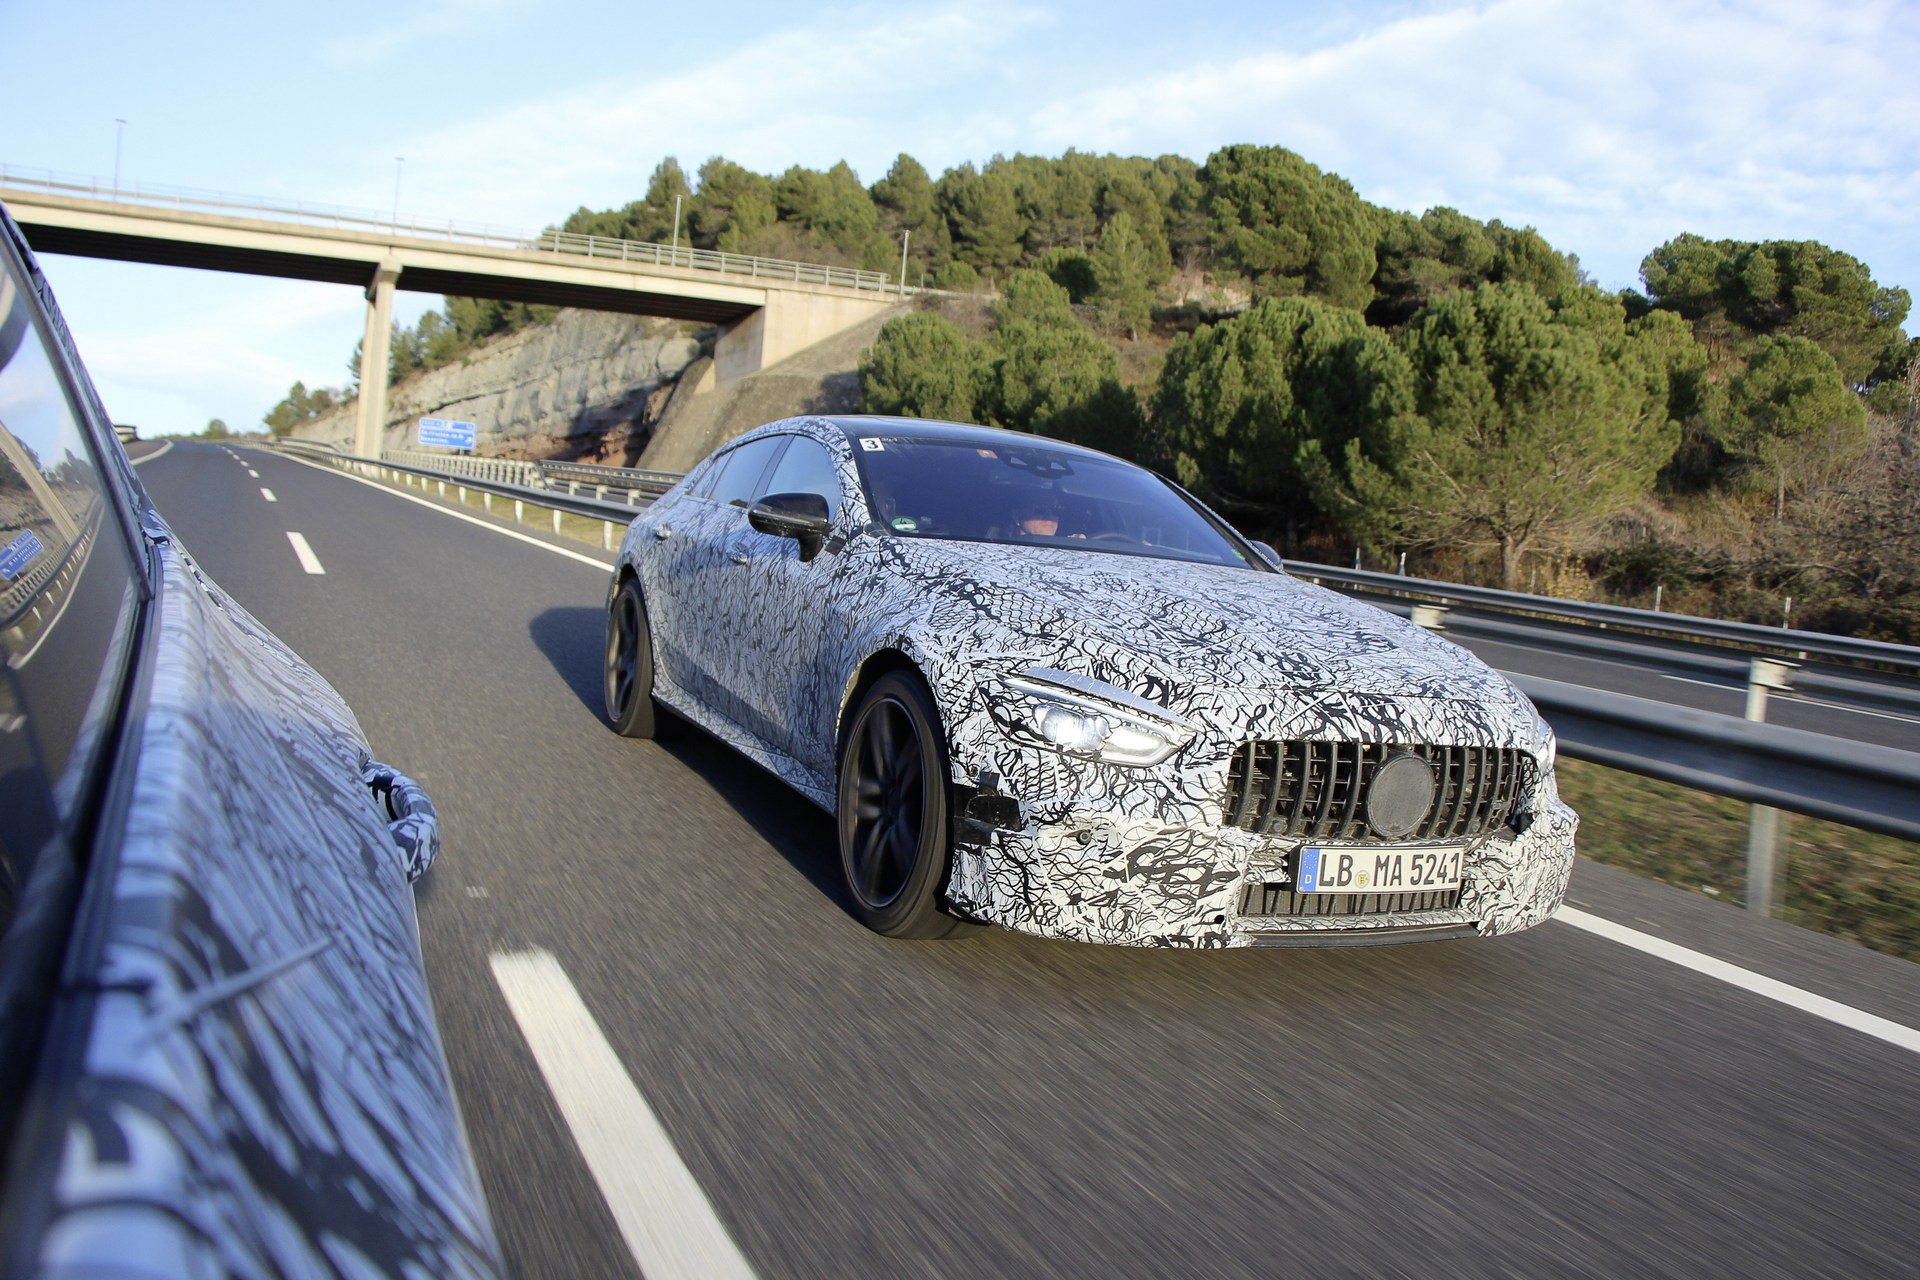 The famous German car manufacturer Mercedes-Benz has posted some early photos of the new four-door Mercedes-AMG GT Coupe supercar on its official website